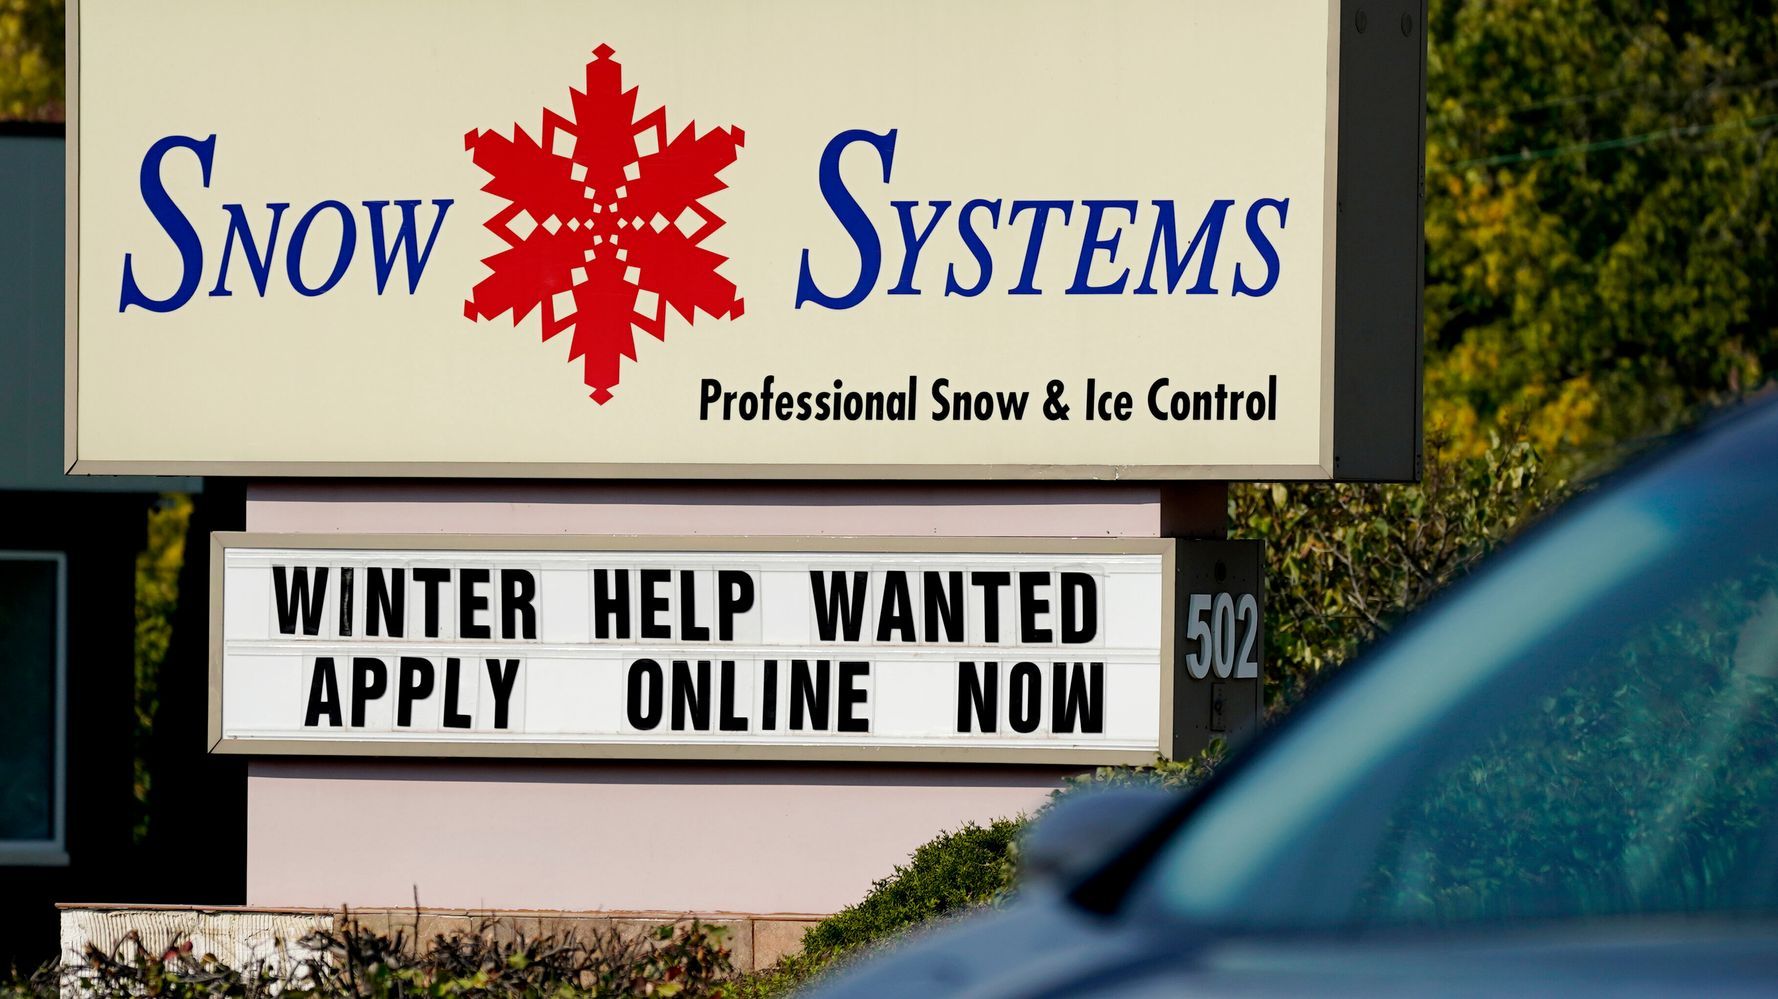 U.S. Jobless Claims Drop To 787,000, But Layoffs Remain High